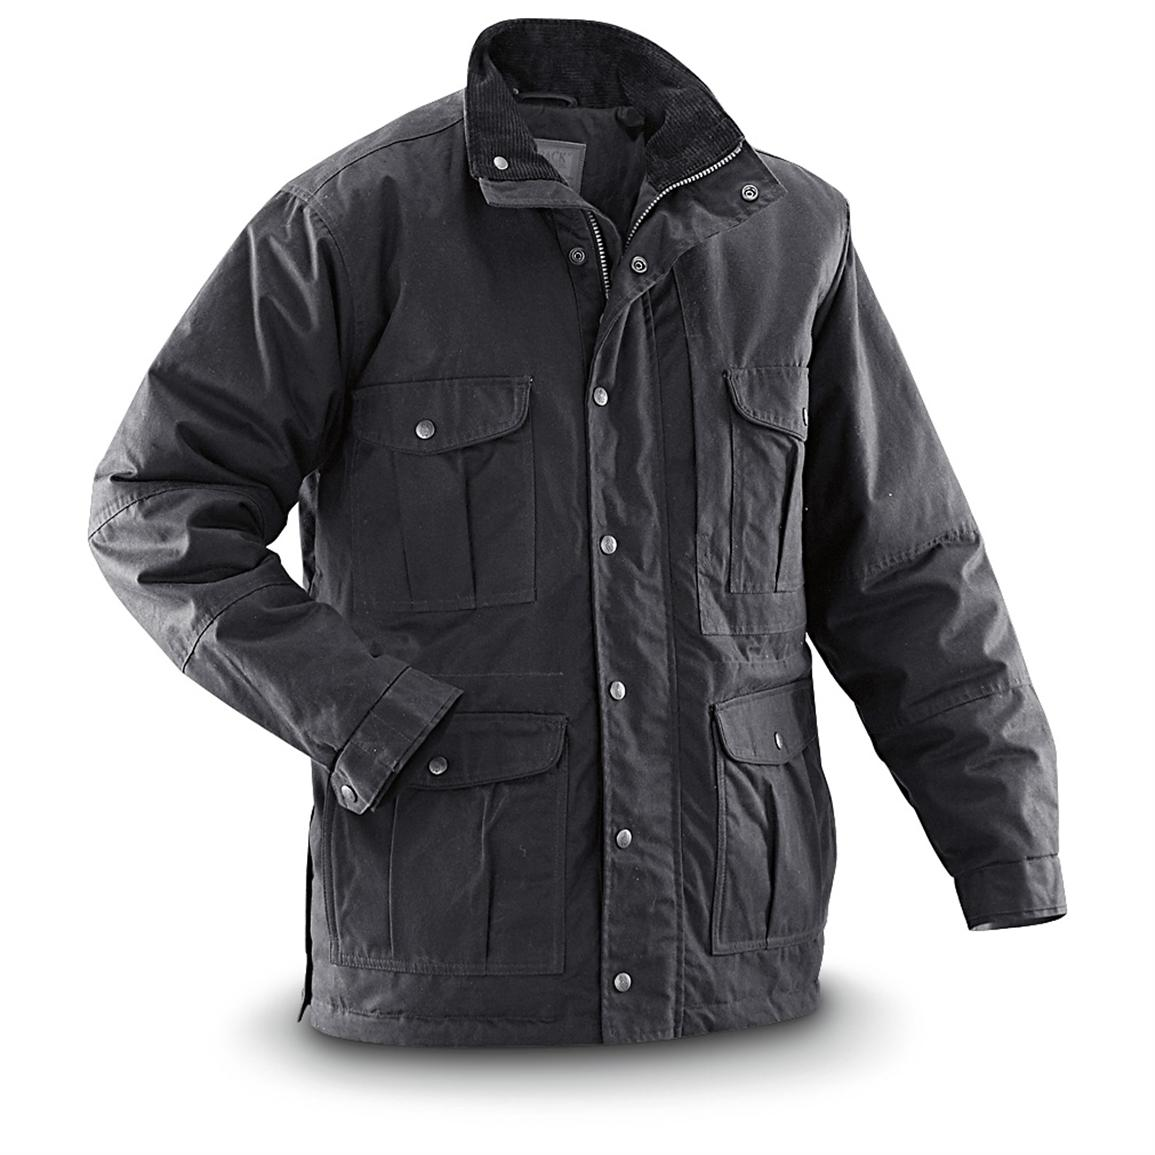 Outback Trading Company Conceal and Carry Buranda Jacket, Black